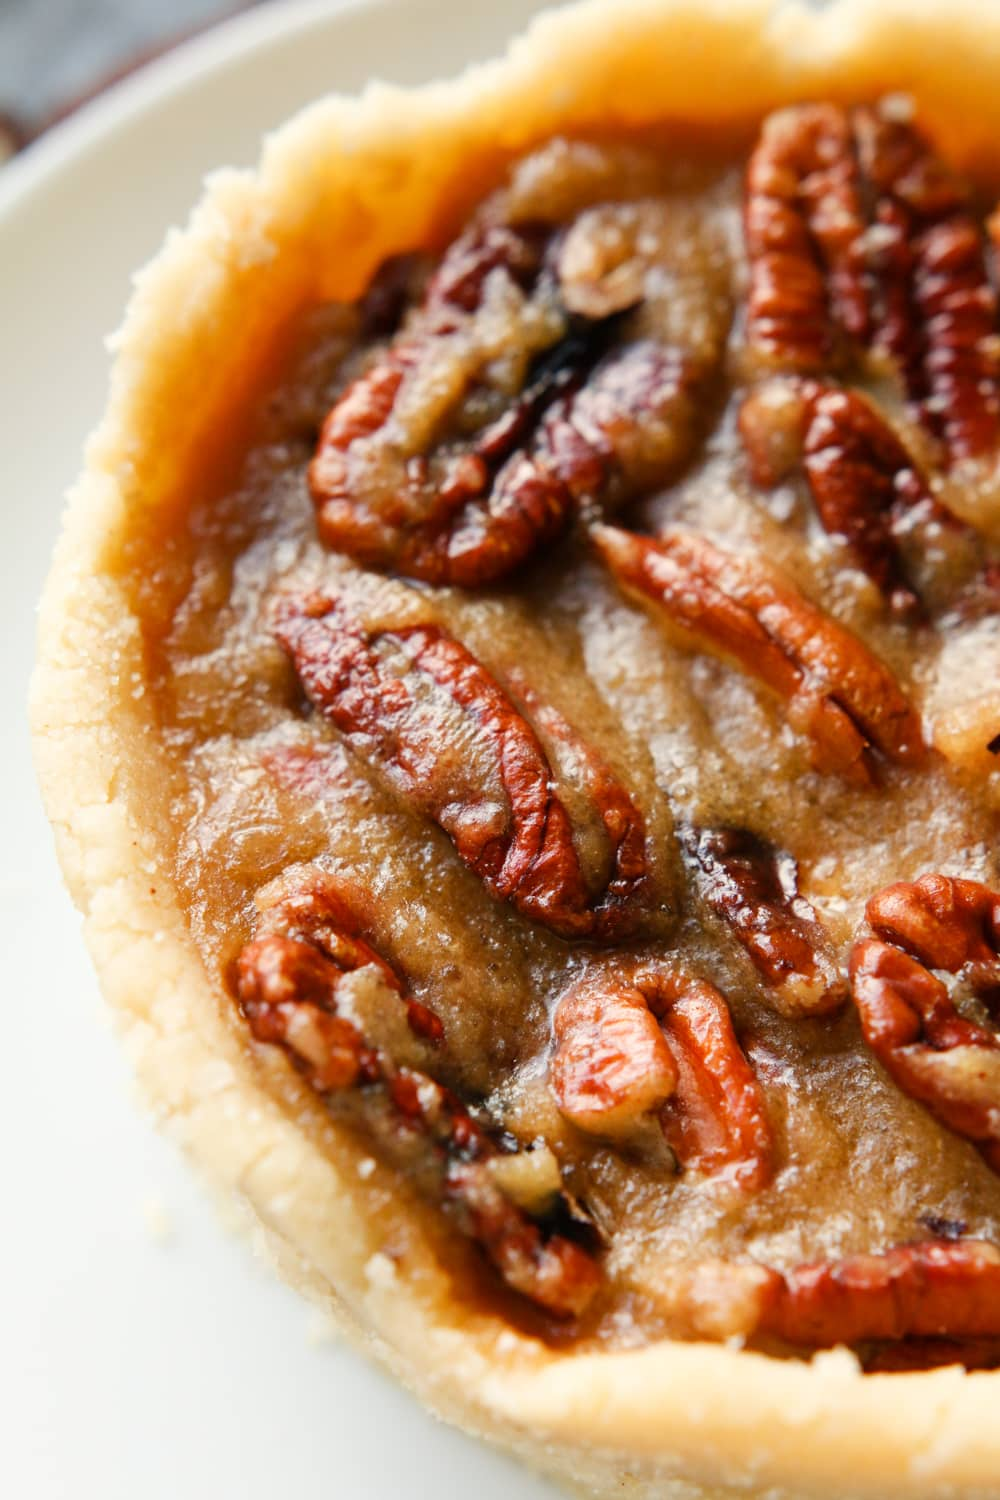 Half of a pecan pie on a white plate.